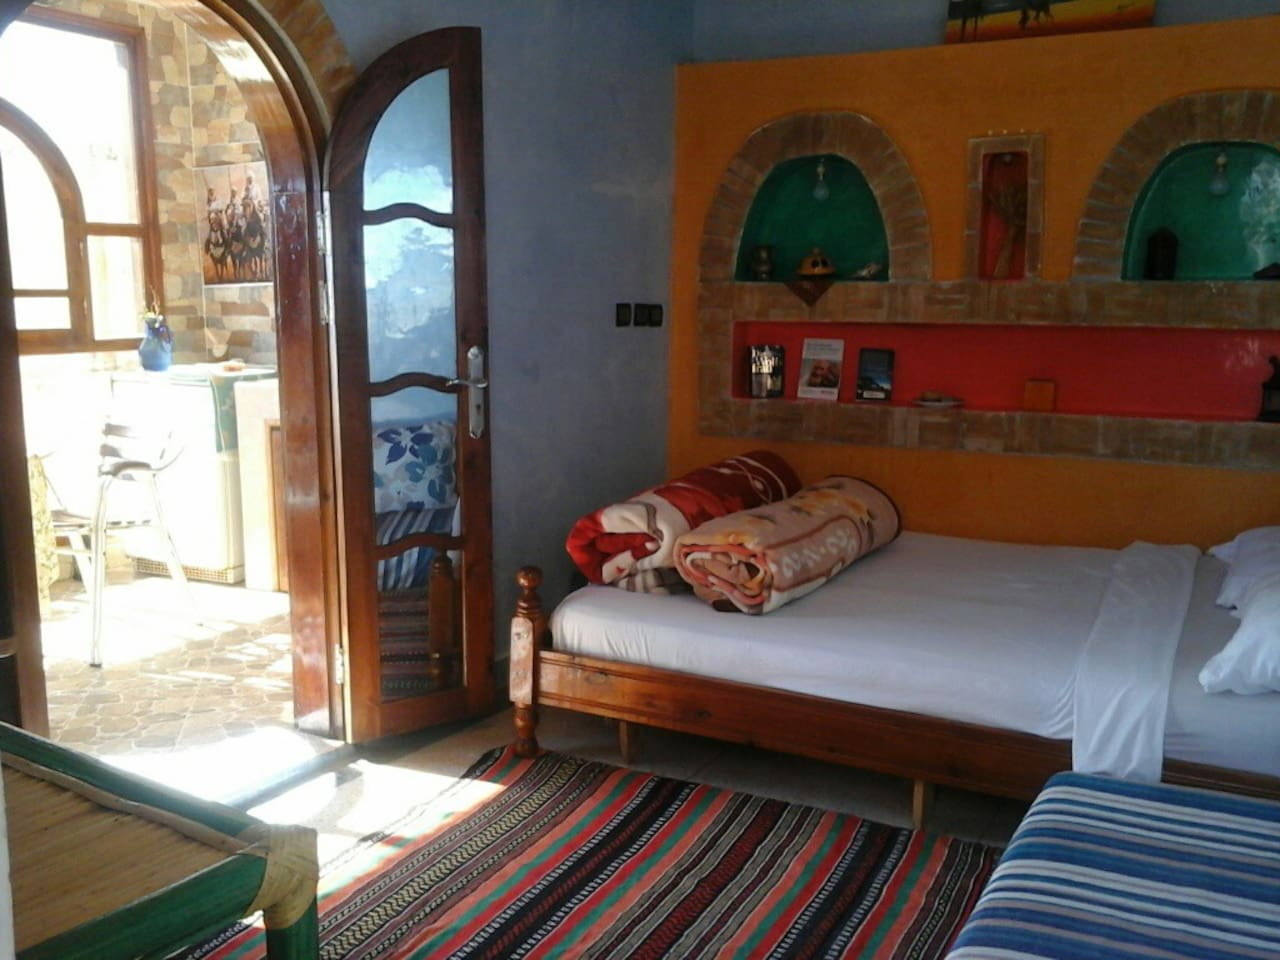 Bedroom next to the kitchen